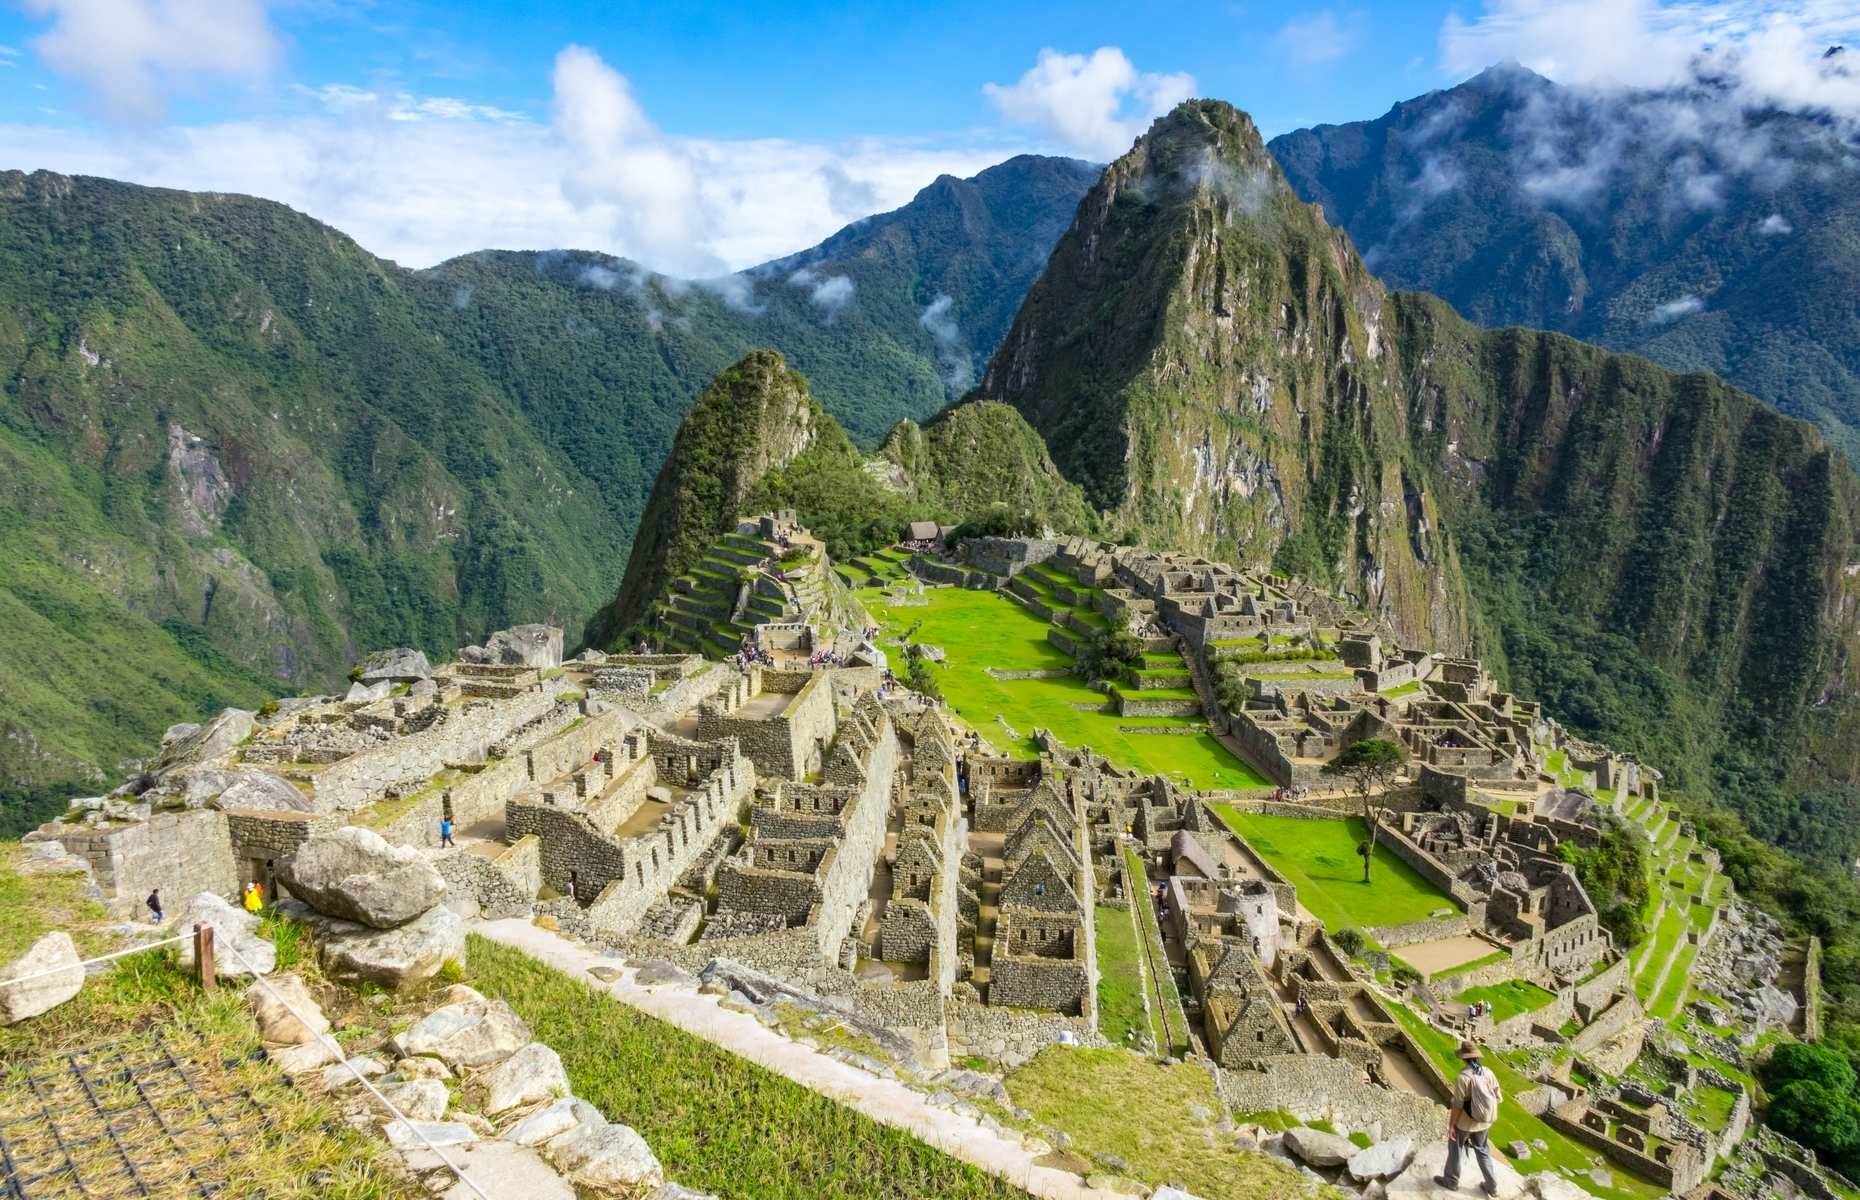 Slide 24 of 41: The famous site of Machu Picchu, built by the emperor Pachacuti around 1440, provided the inspiration for the village of Pacha in The Emperor's New Groove, released in 2000.